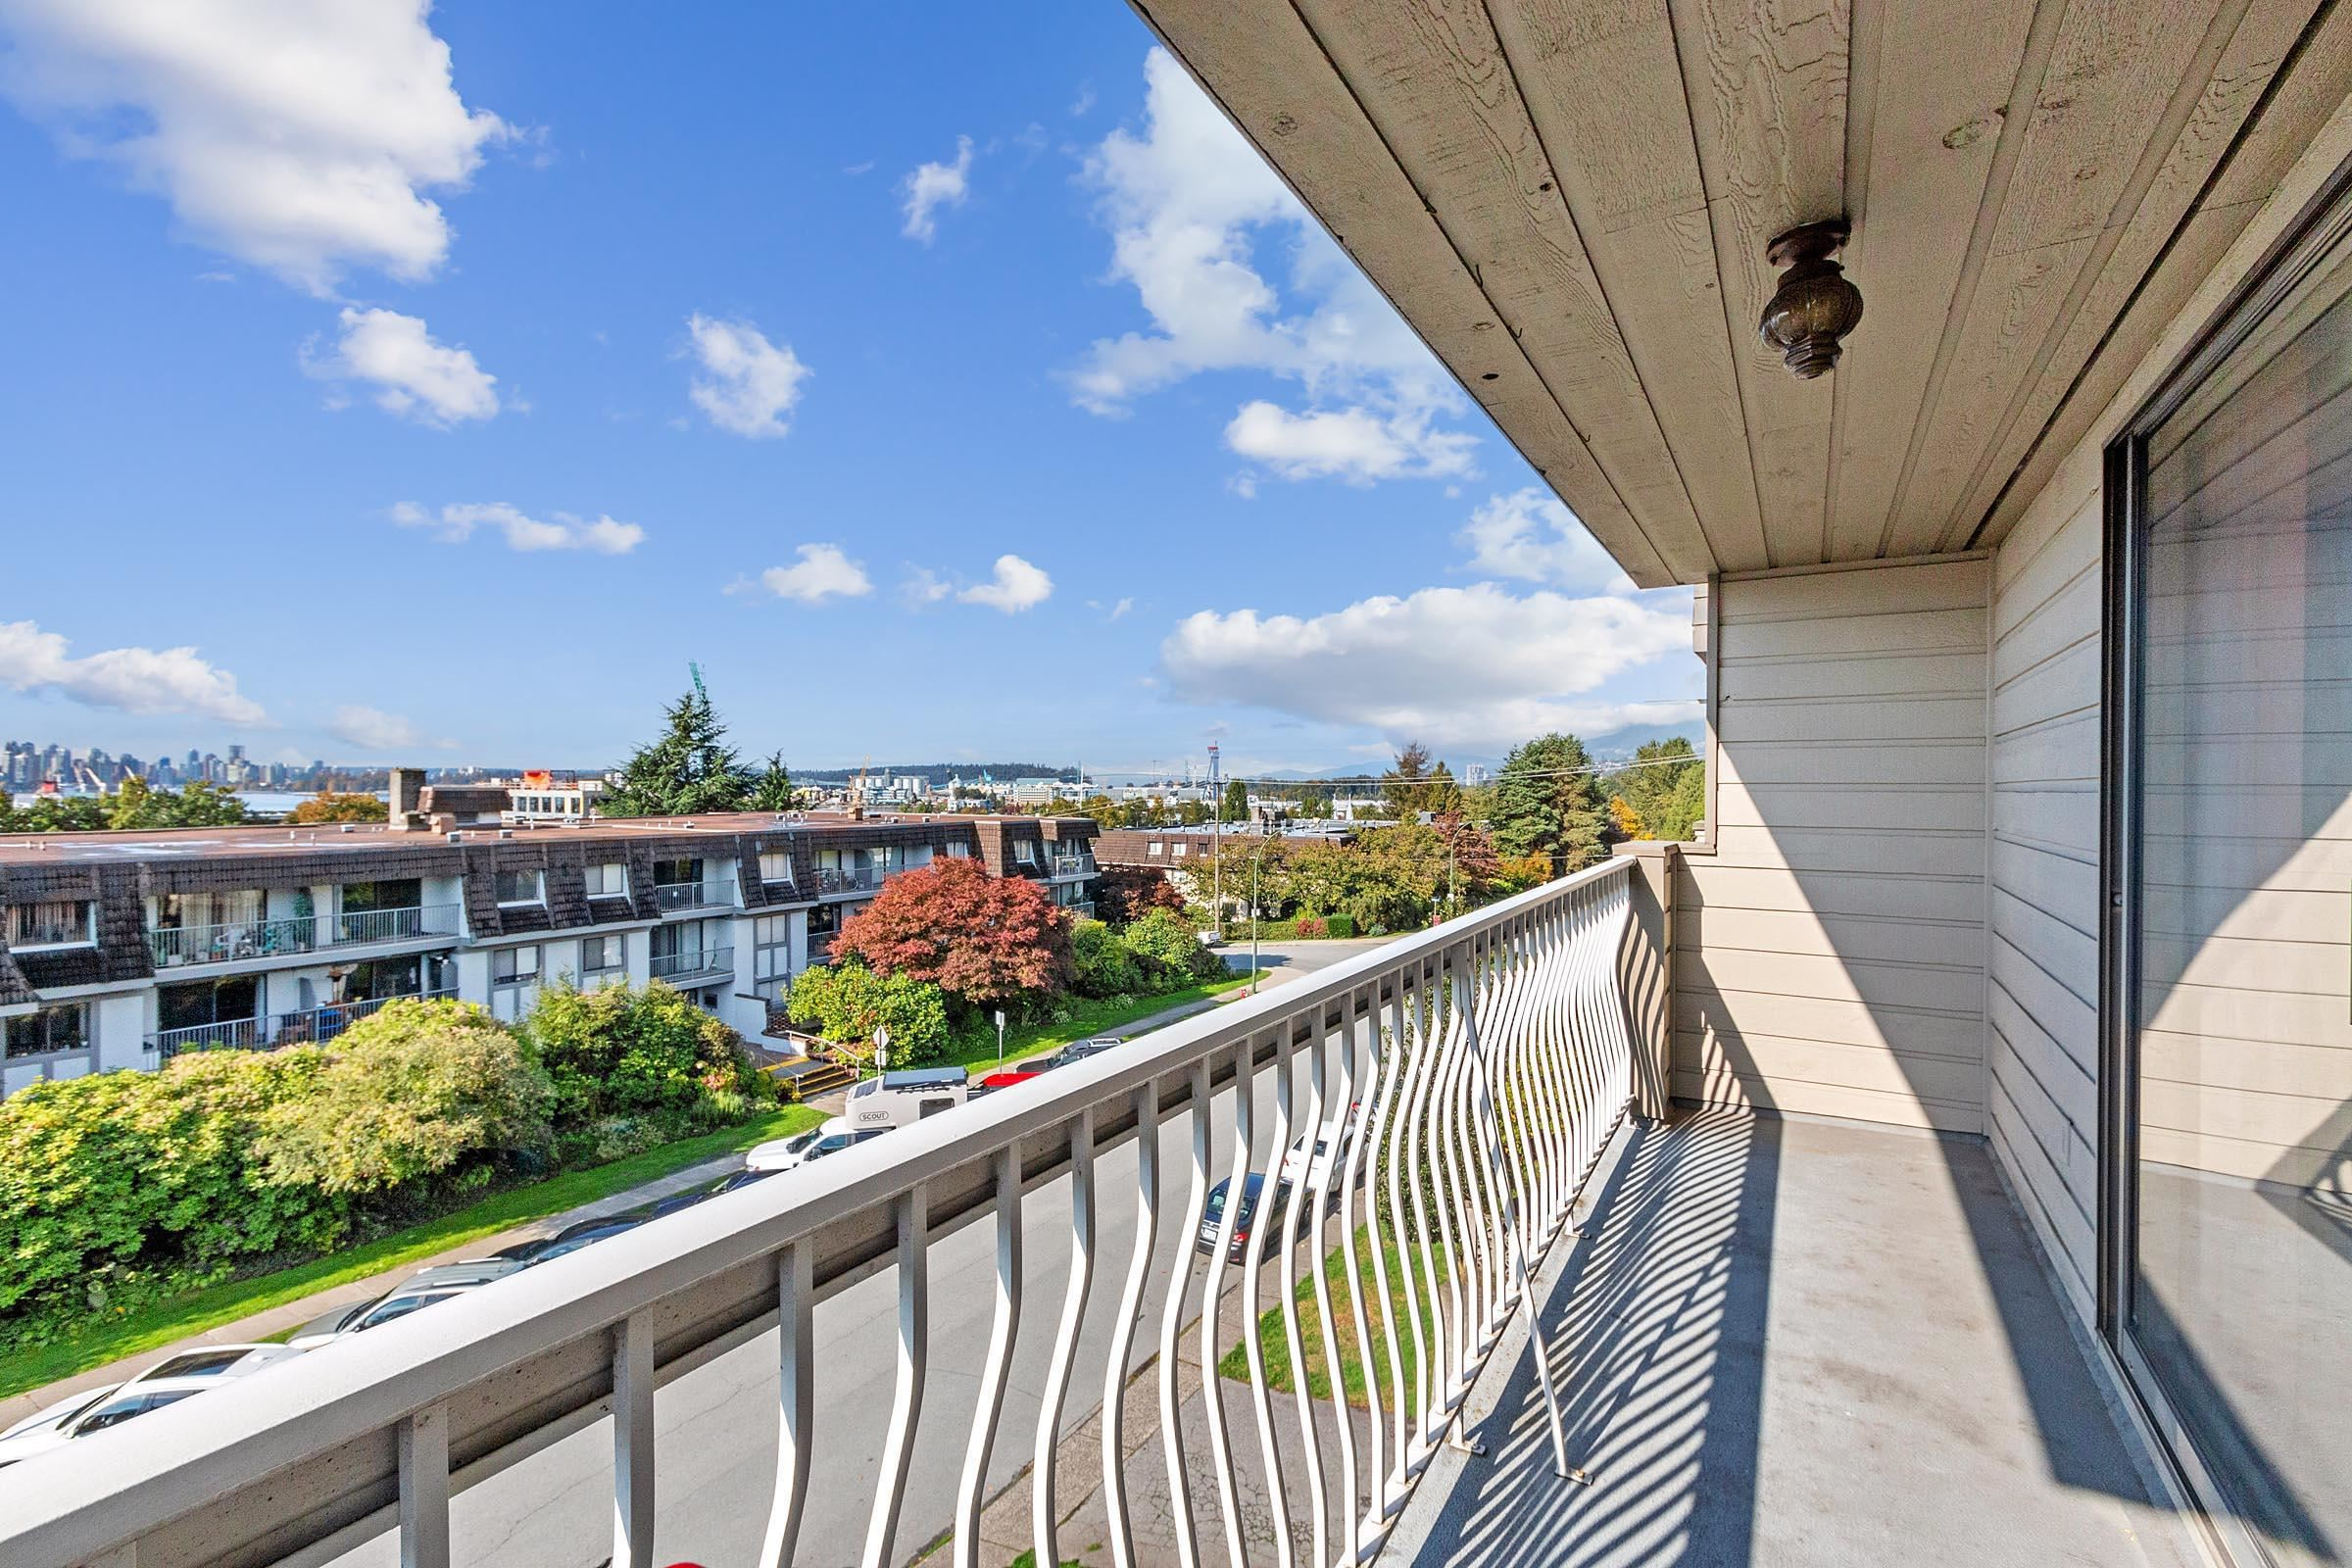 Listing image of 301 264 W 2ND STREET